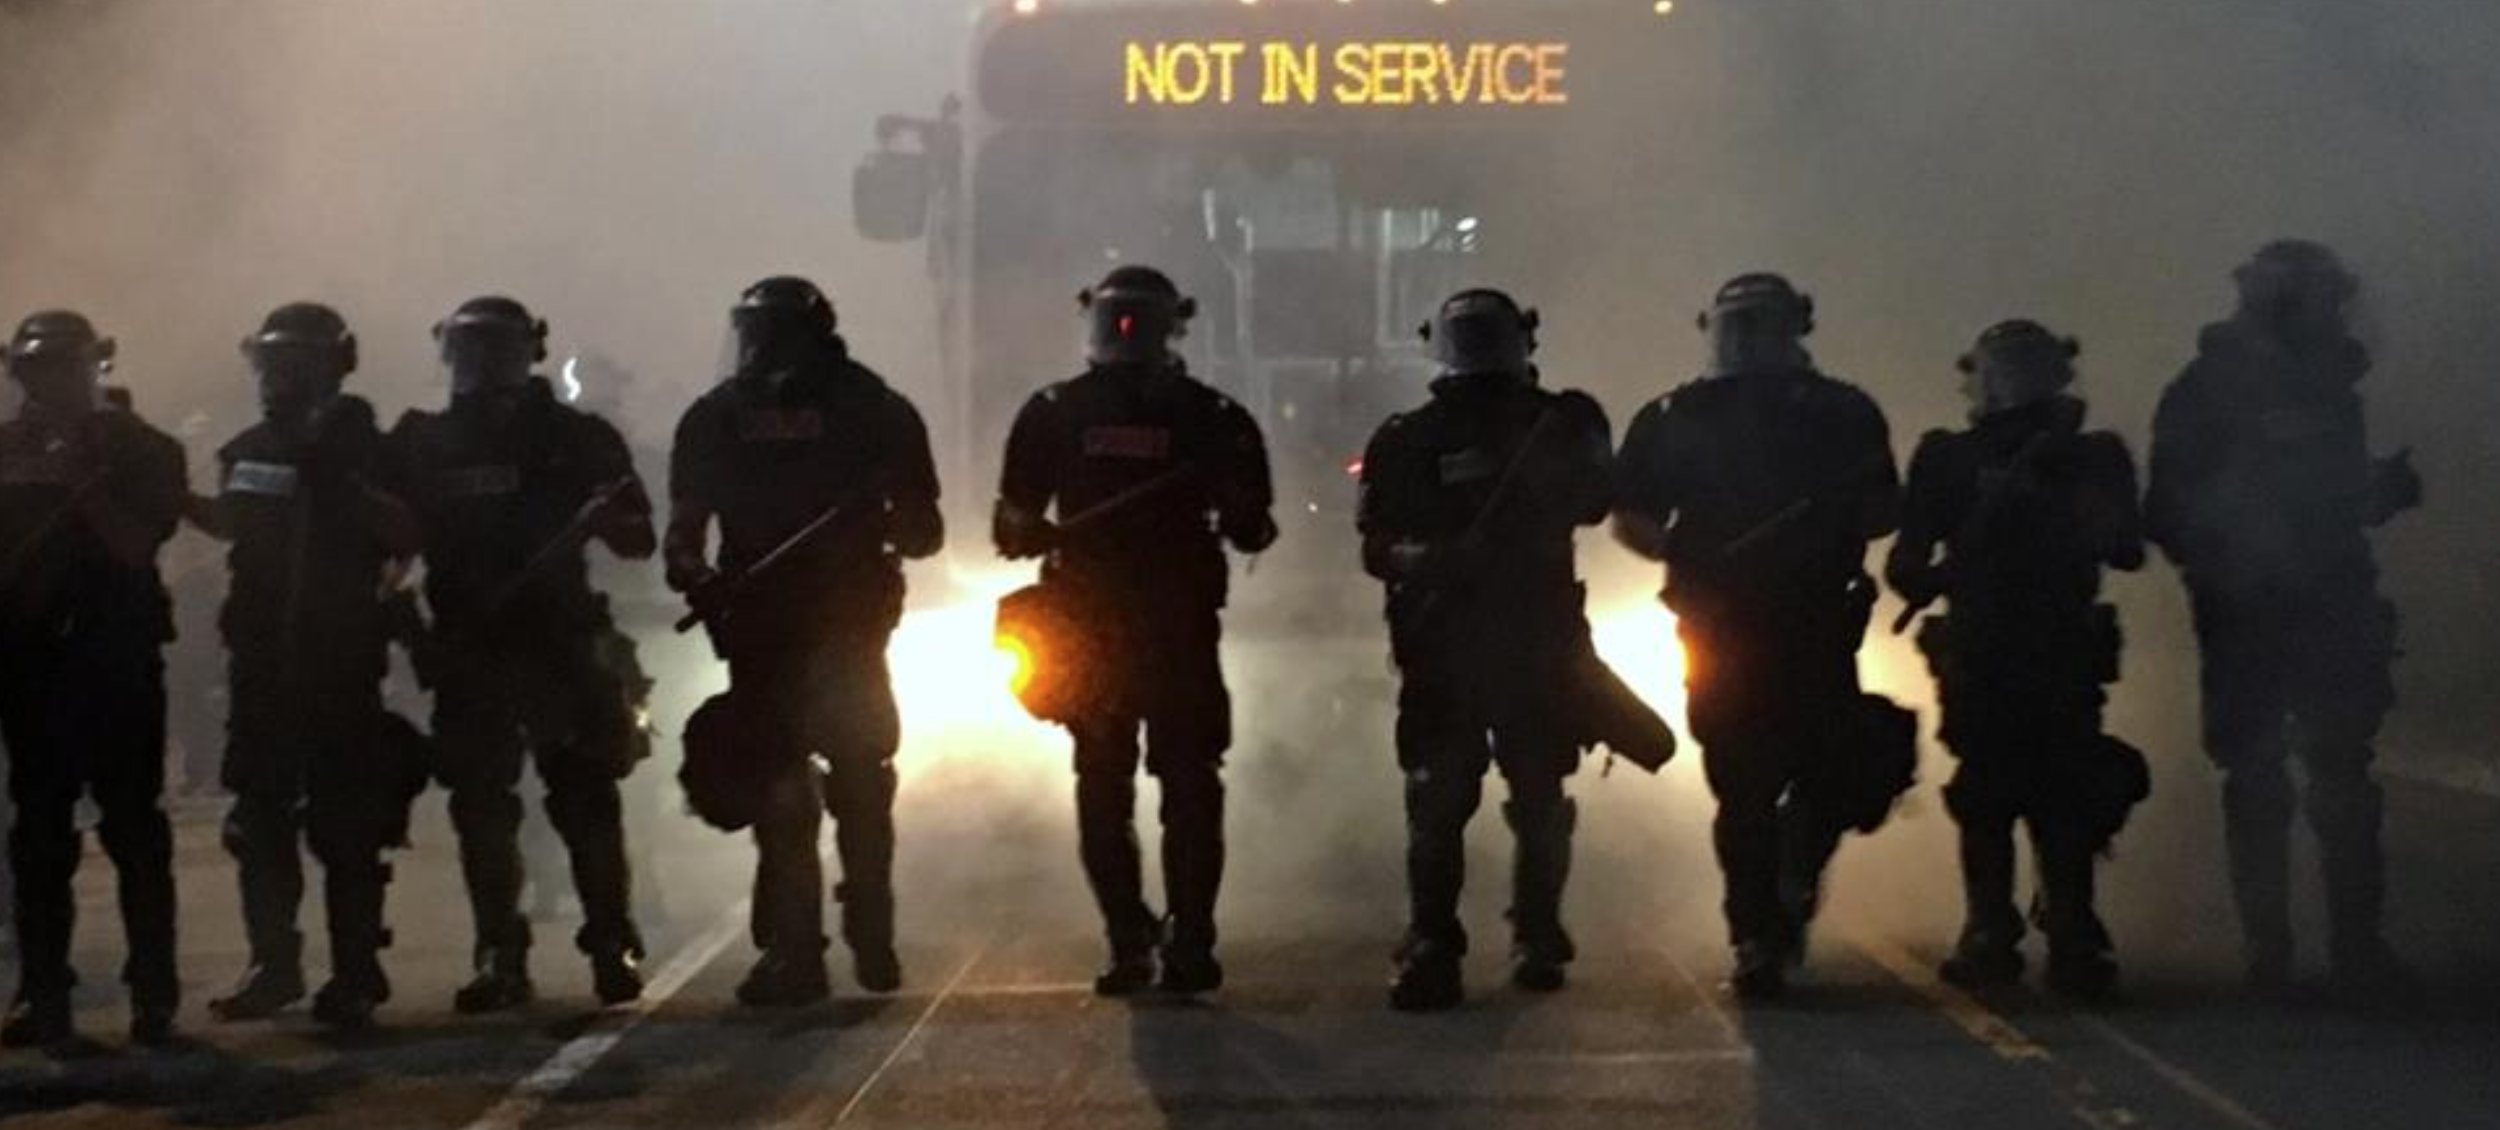 protests, riot gear, service